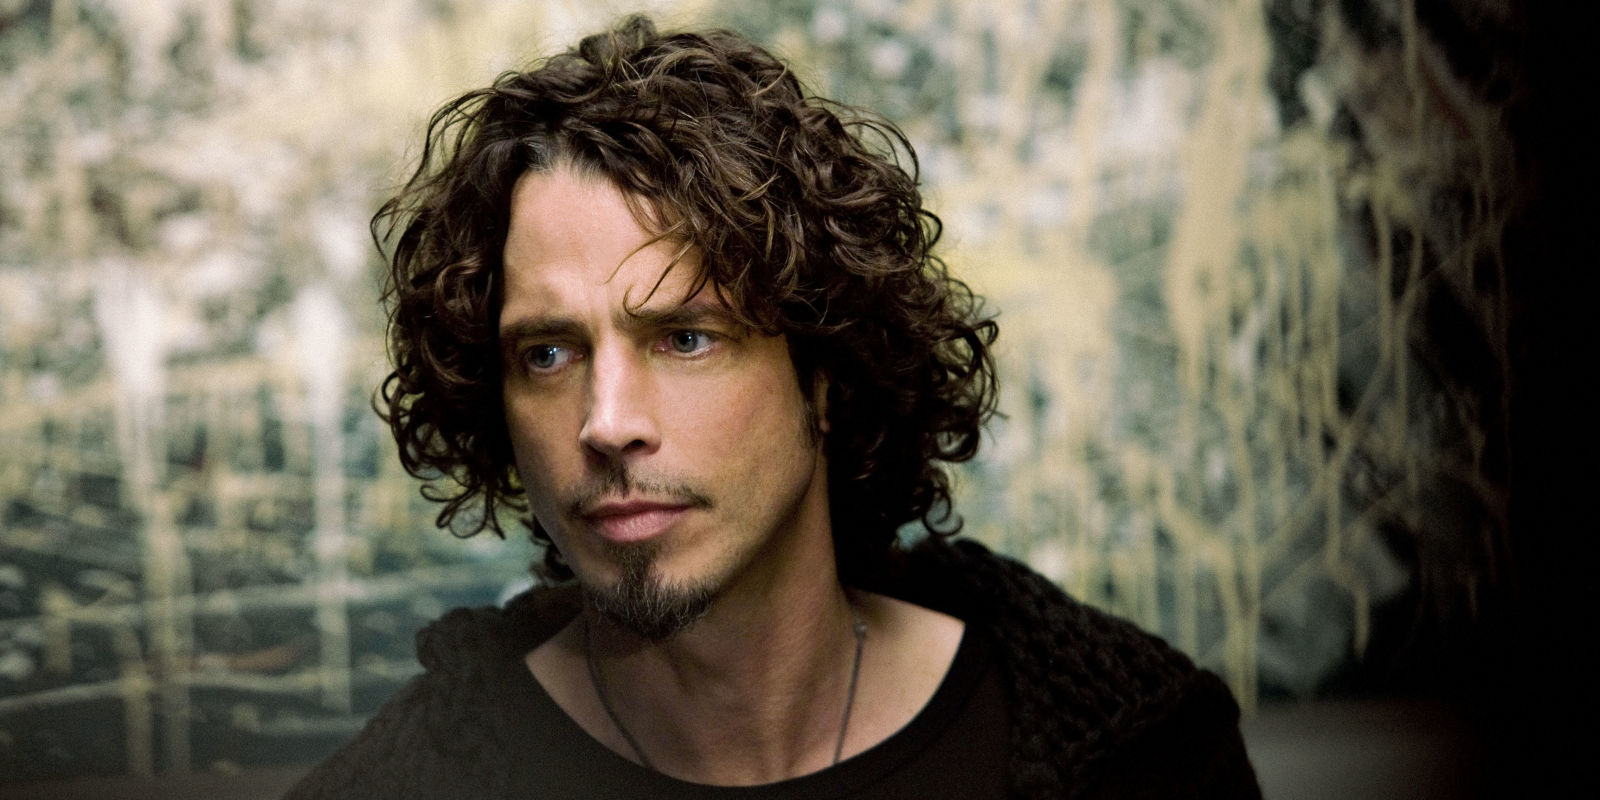 Chris Cornell: Chris Cornell's Voice Was A Once-in-a-Lifetime Sound